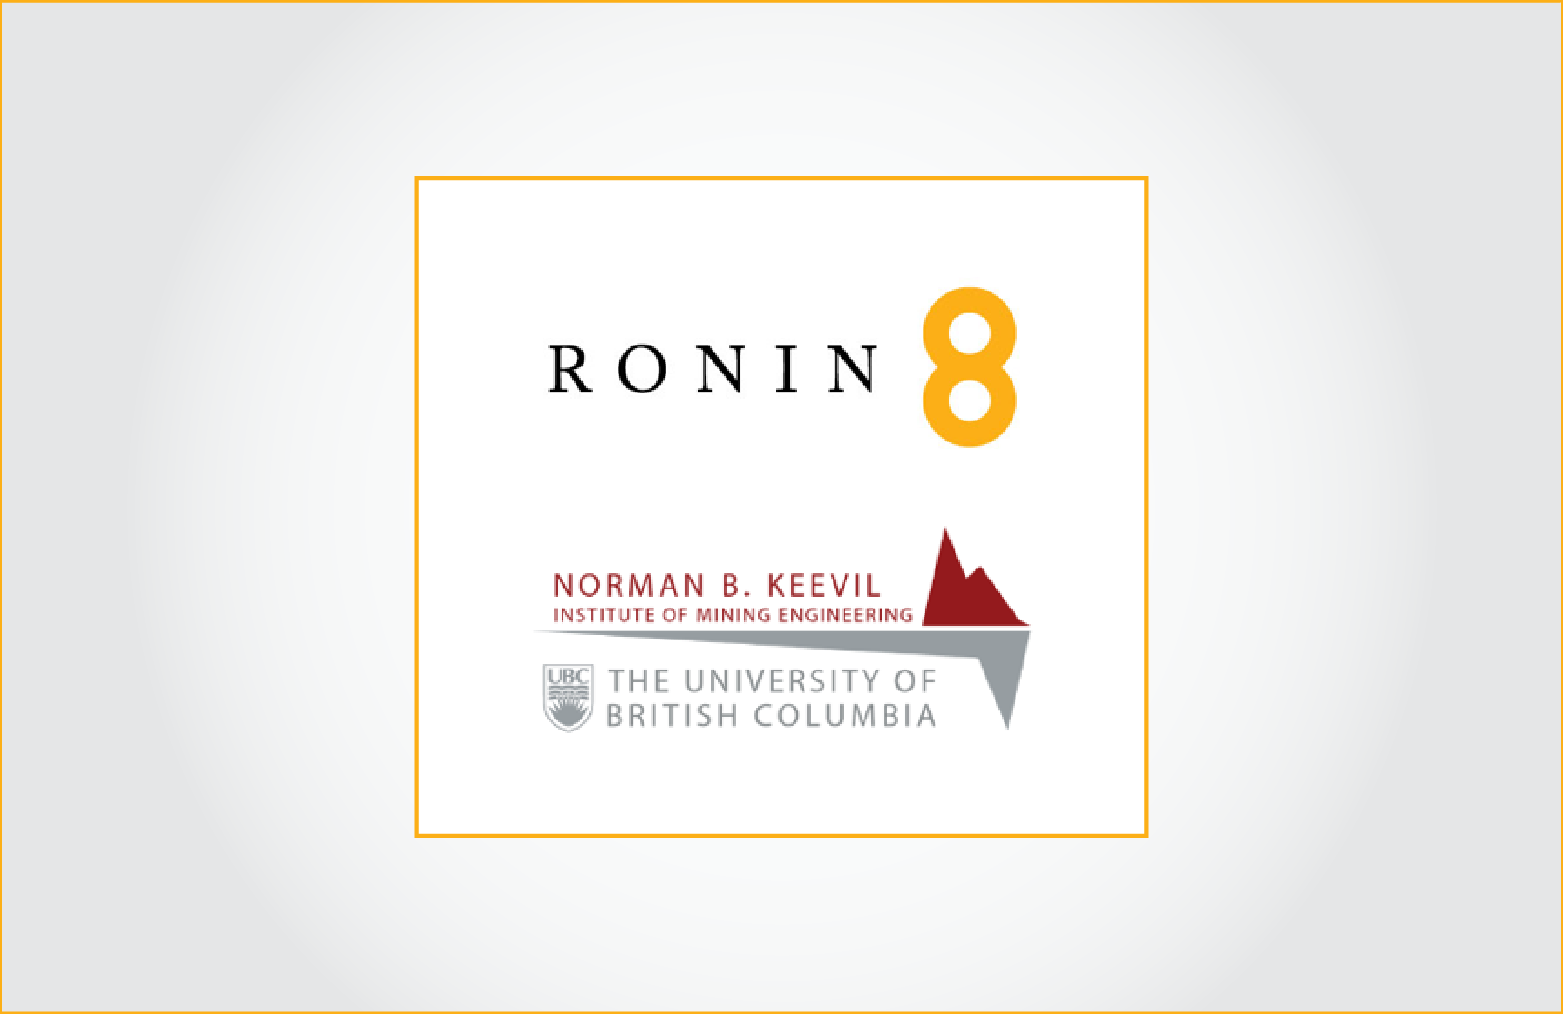 Ronin8 announces zero-waste solution for electronic waste